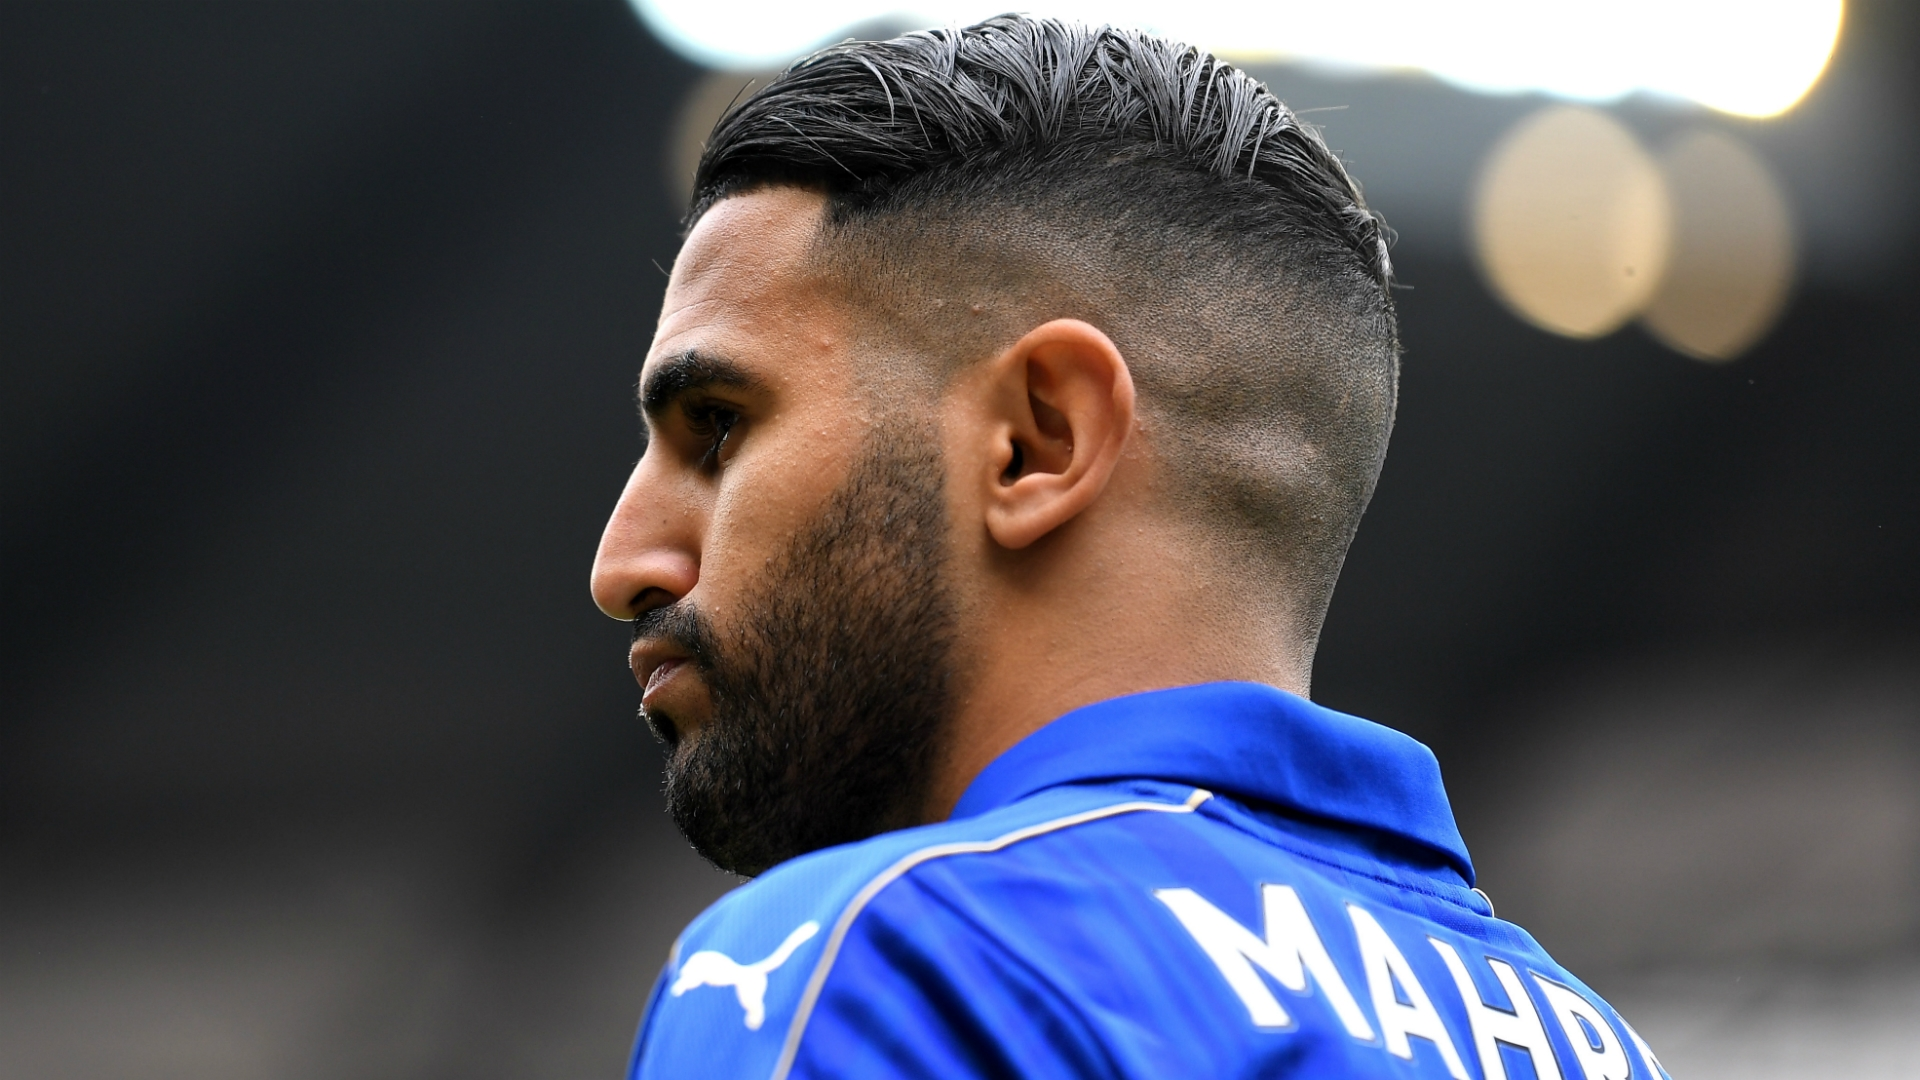 When we last covered the topic of Mahrez wanting to leave Leicester City for a different club, preferably one engaged in European competitions, the team's reps had informed the press that no offers were yet on the table for the player.